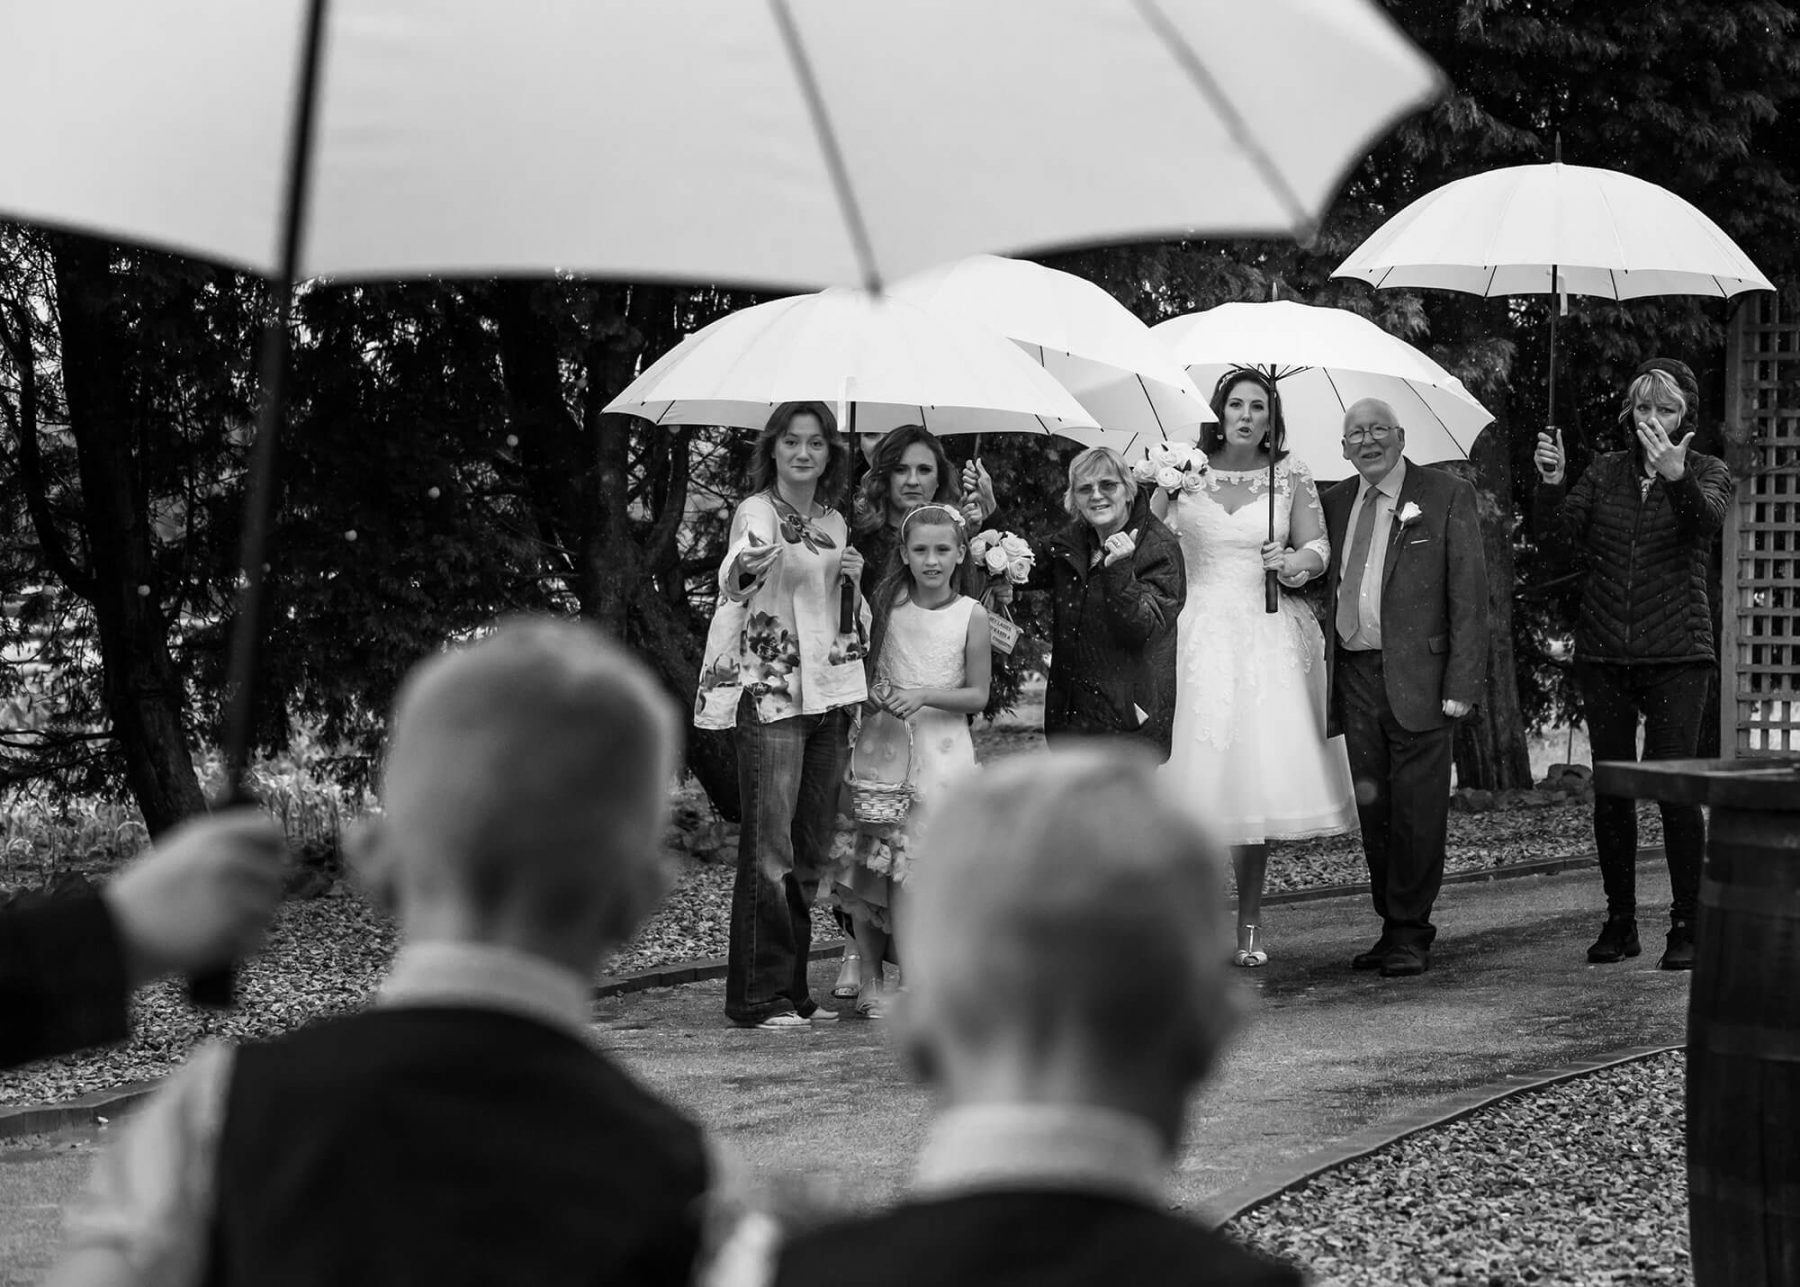 The bridal party arrive in the rain